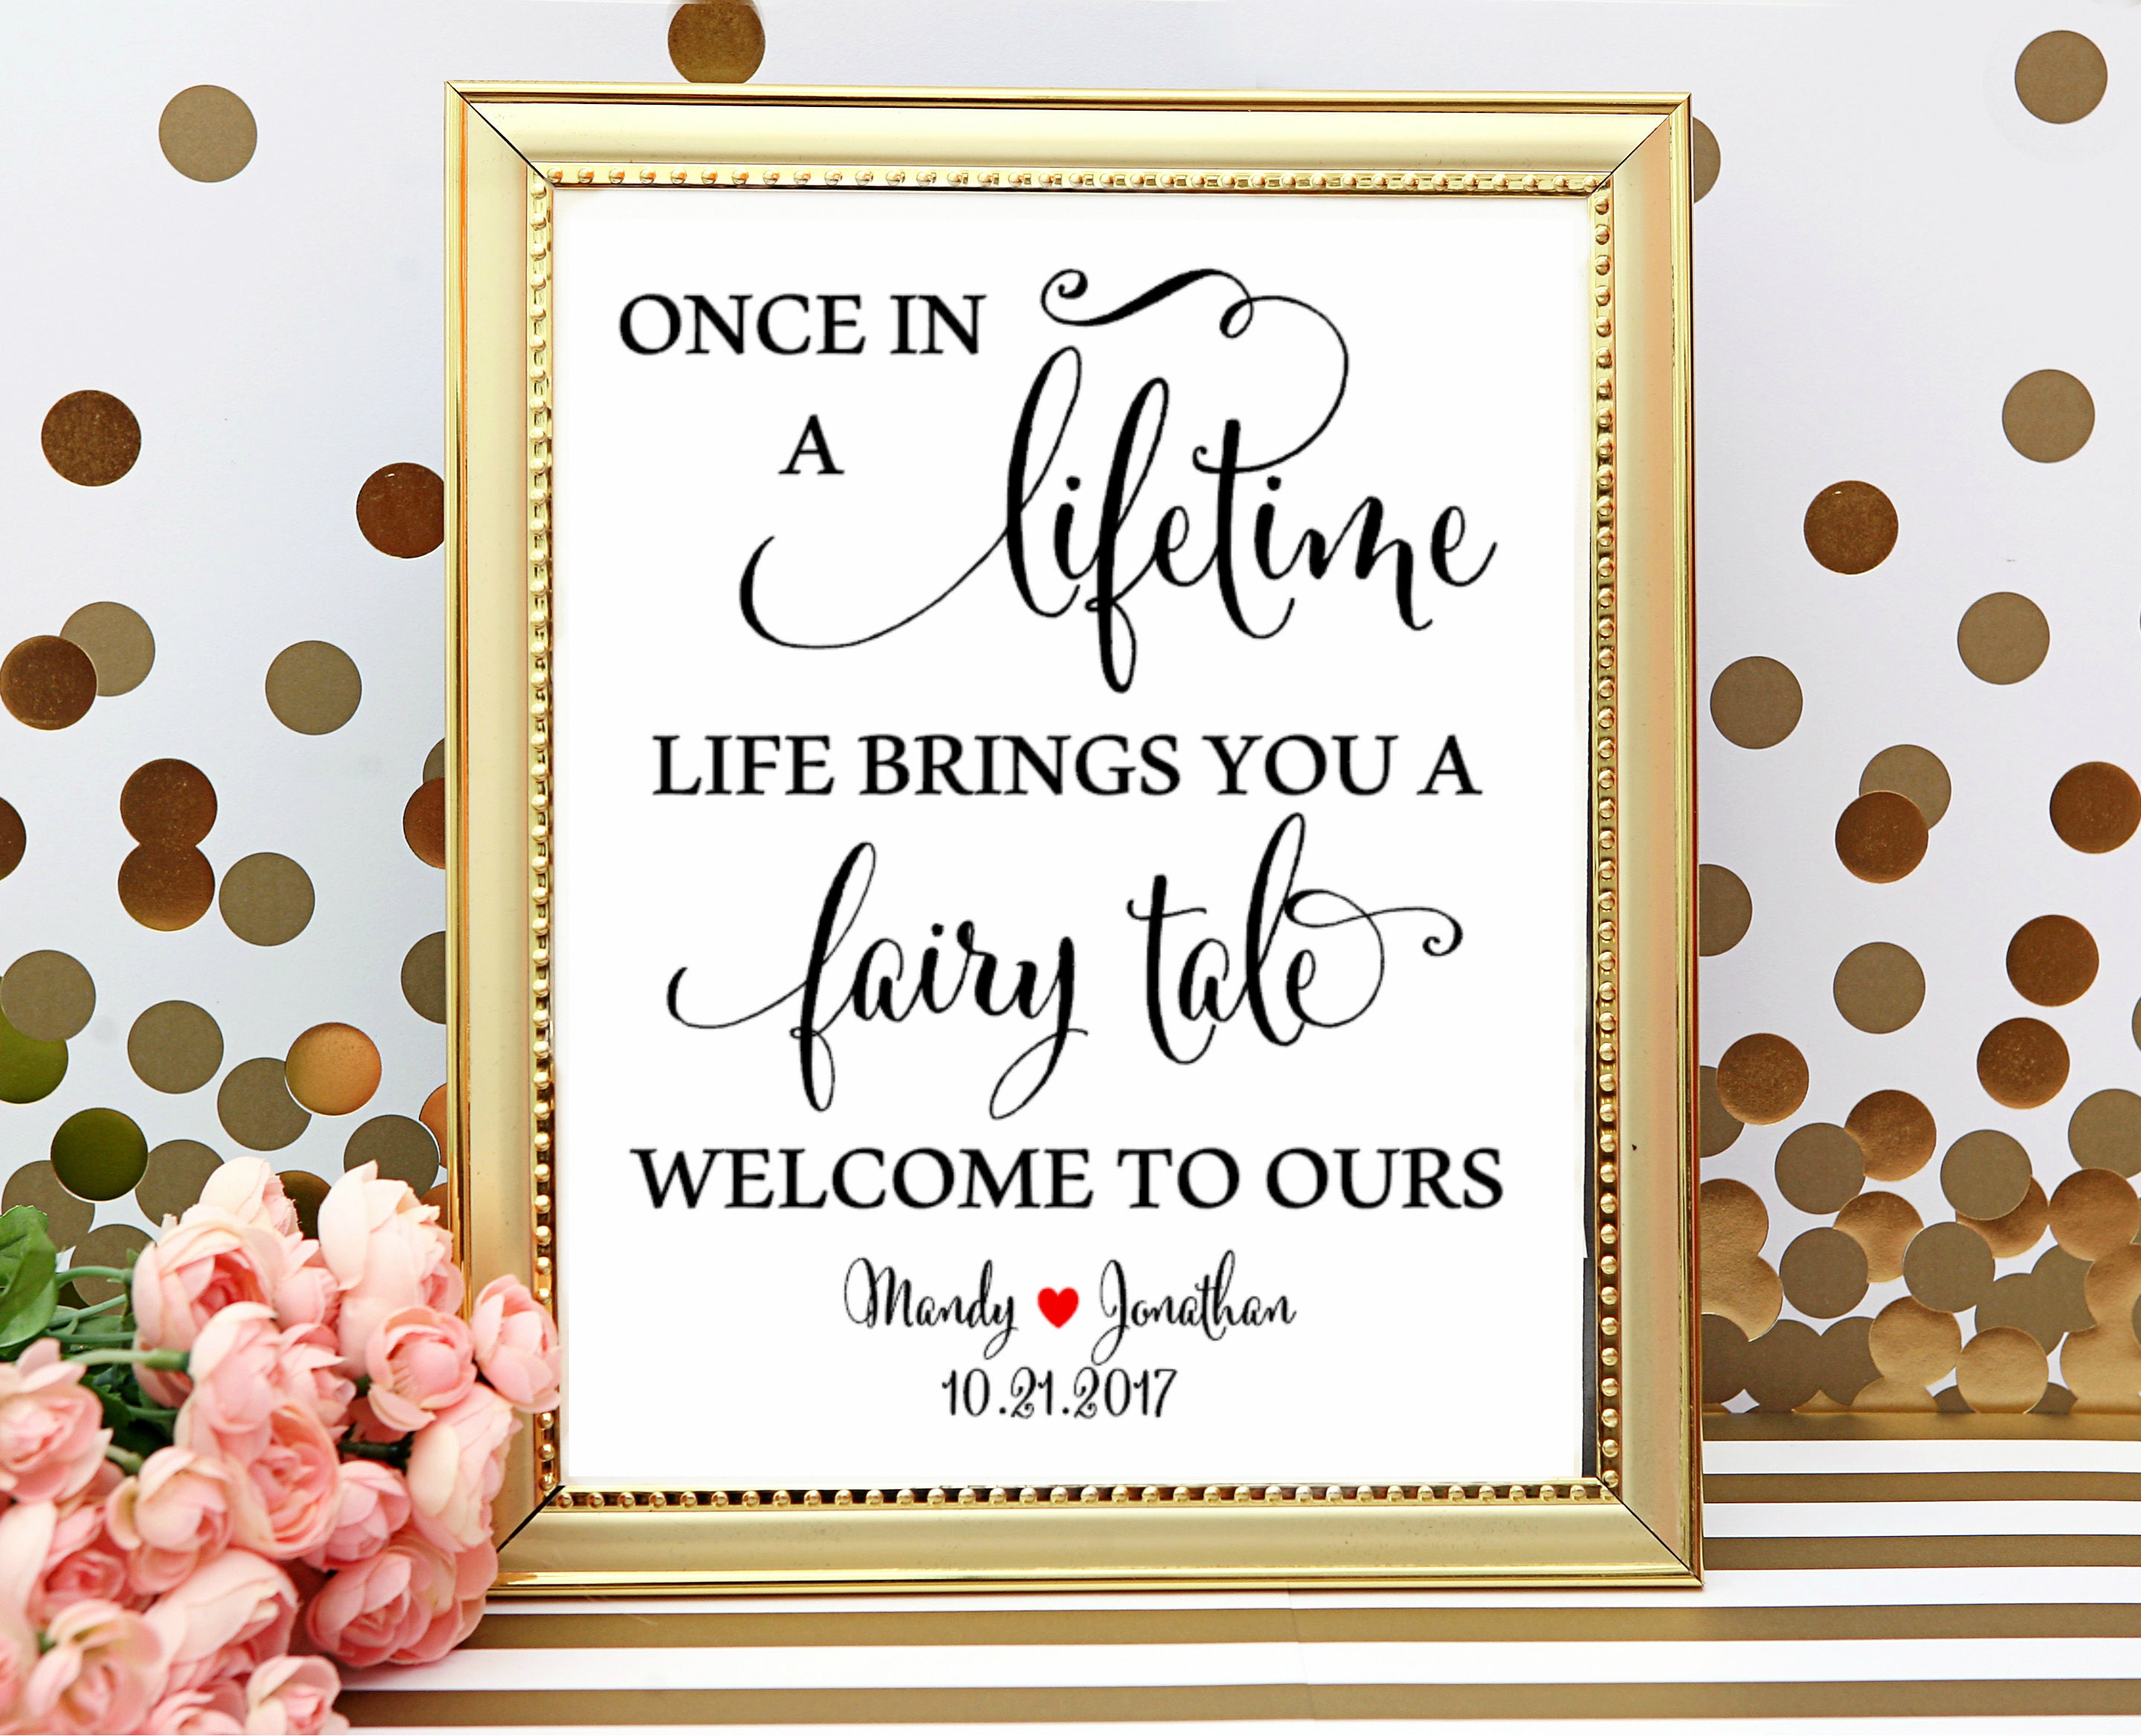 Wedding Once in a lifetime life brings you a fairy tale sign ...